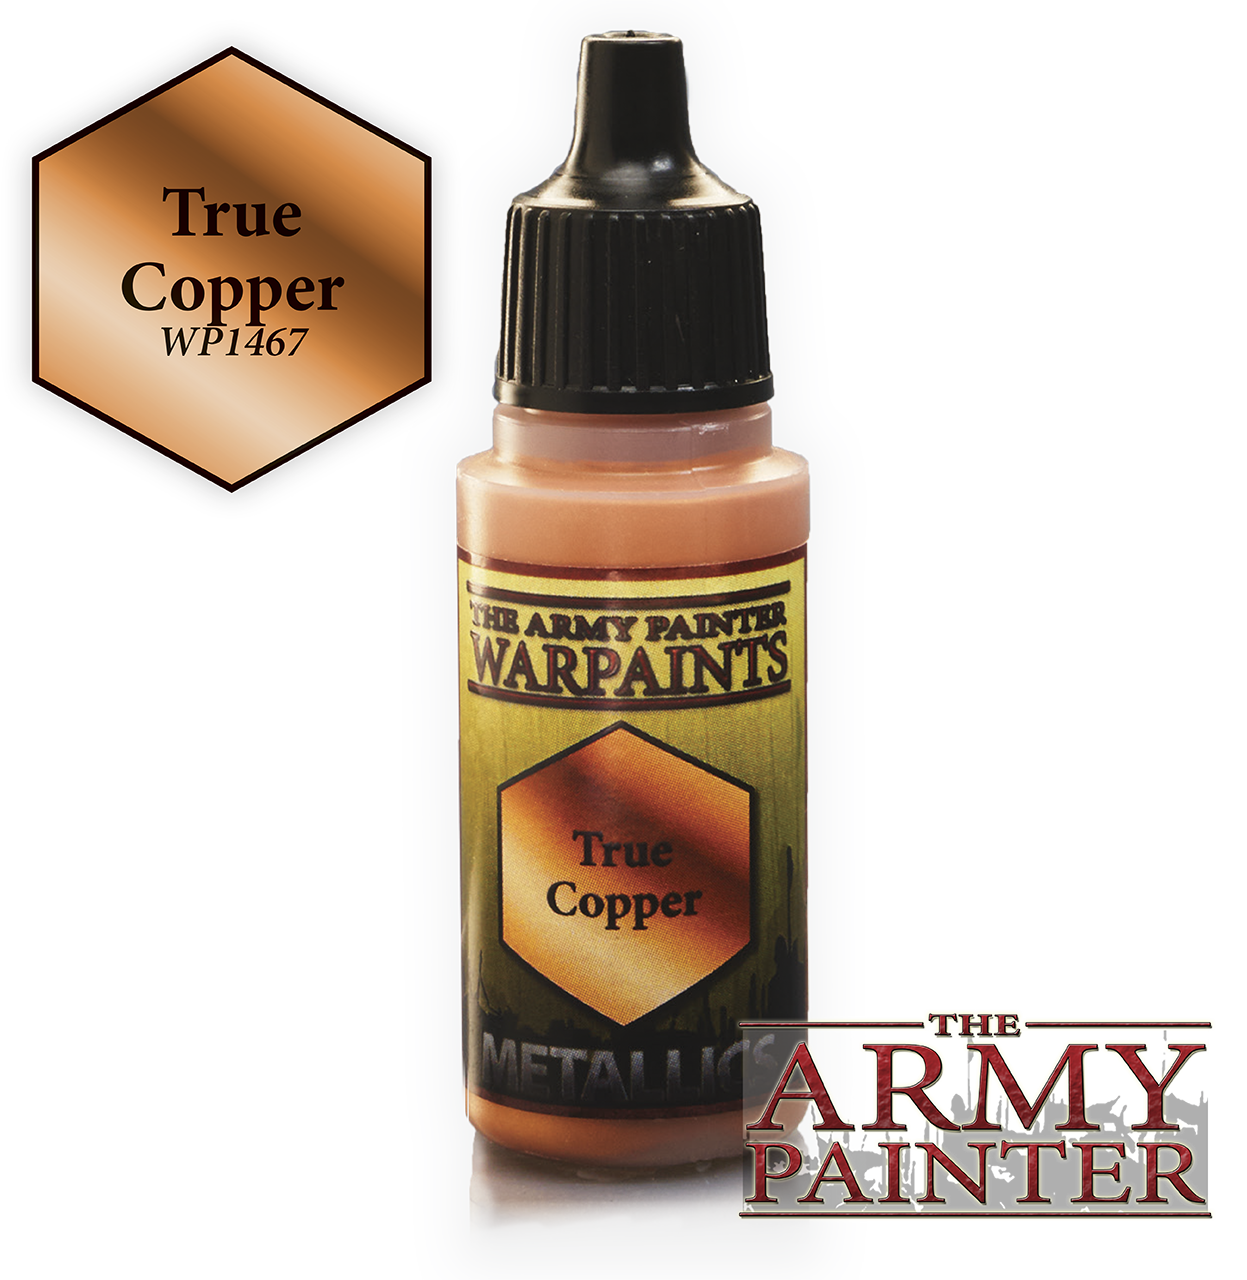 The Army Painter Warpaint True Copper